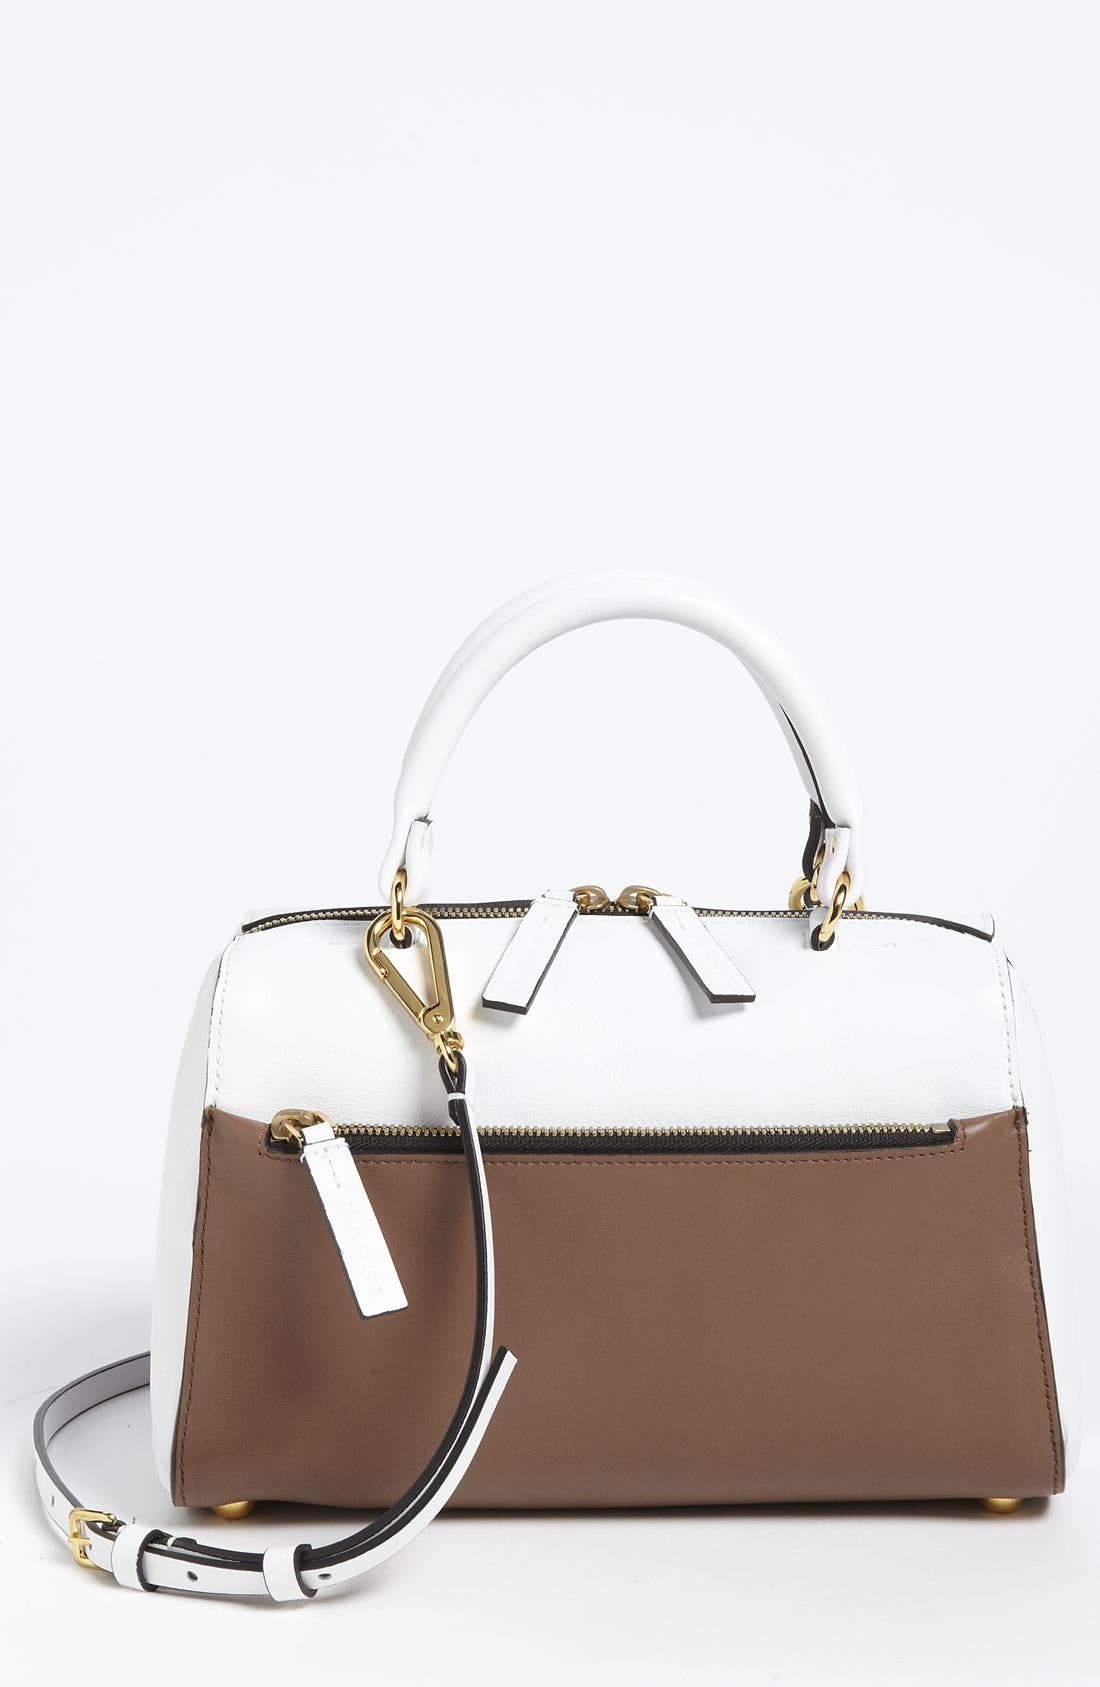 Main Image - Marni 'Mini' Crossbody Duffel Bag